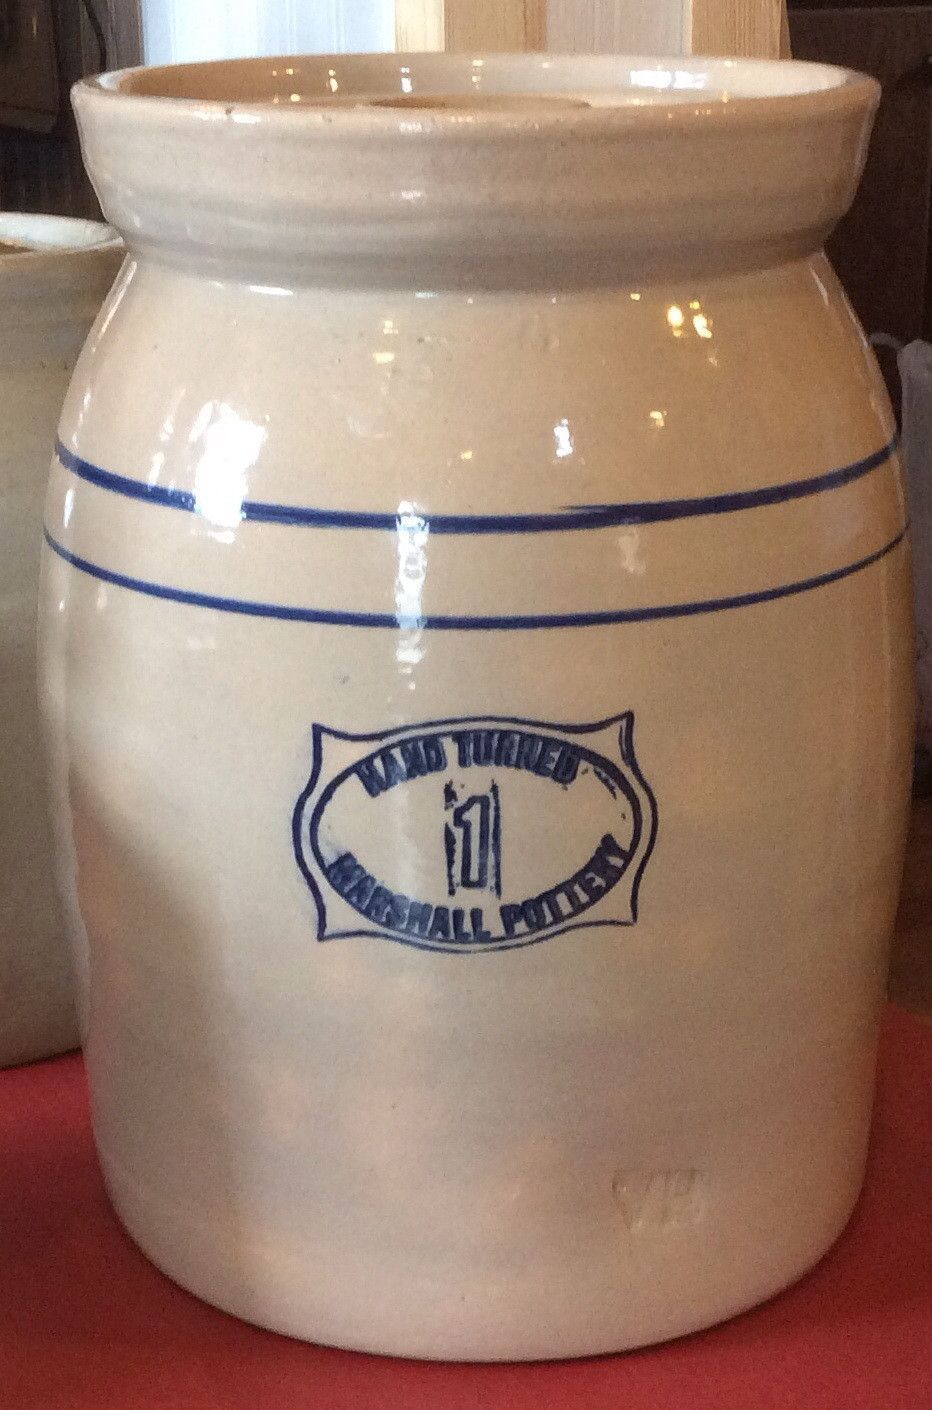 Hand Turned Marshall Pottery 1 Gallon Butter Churn Pottery